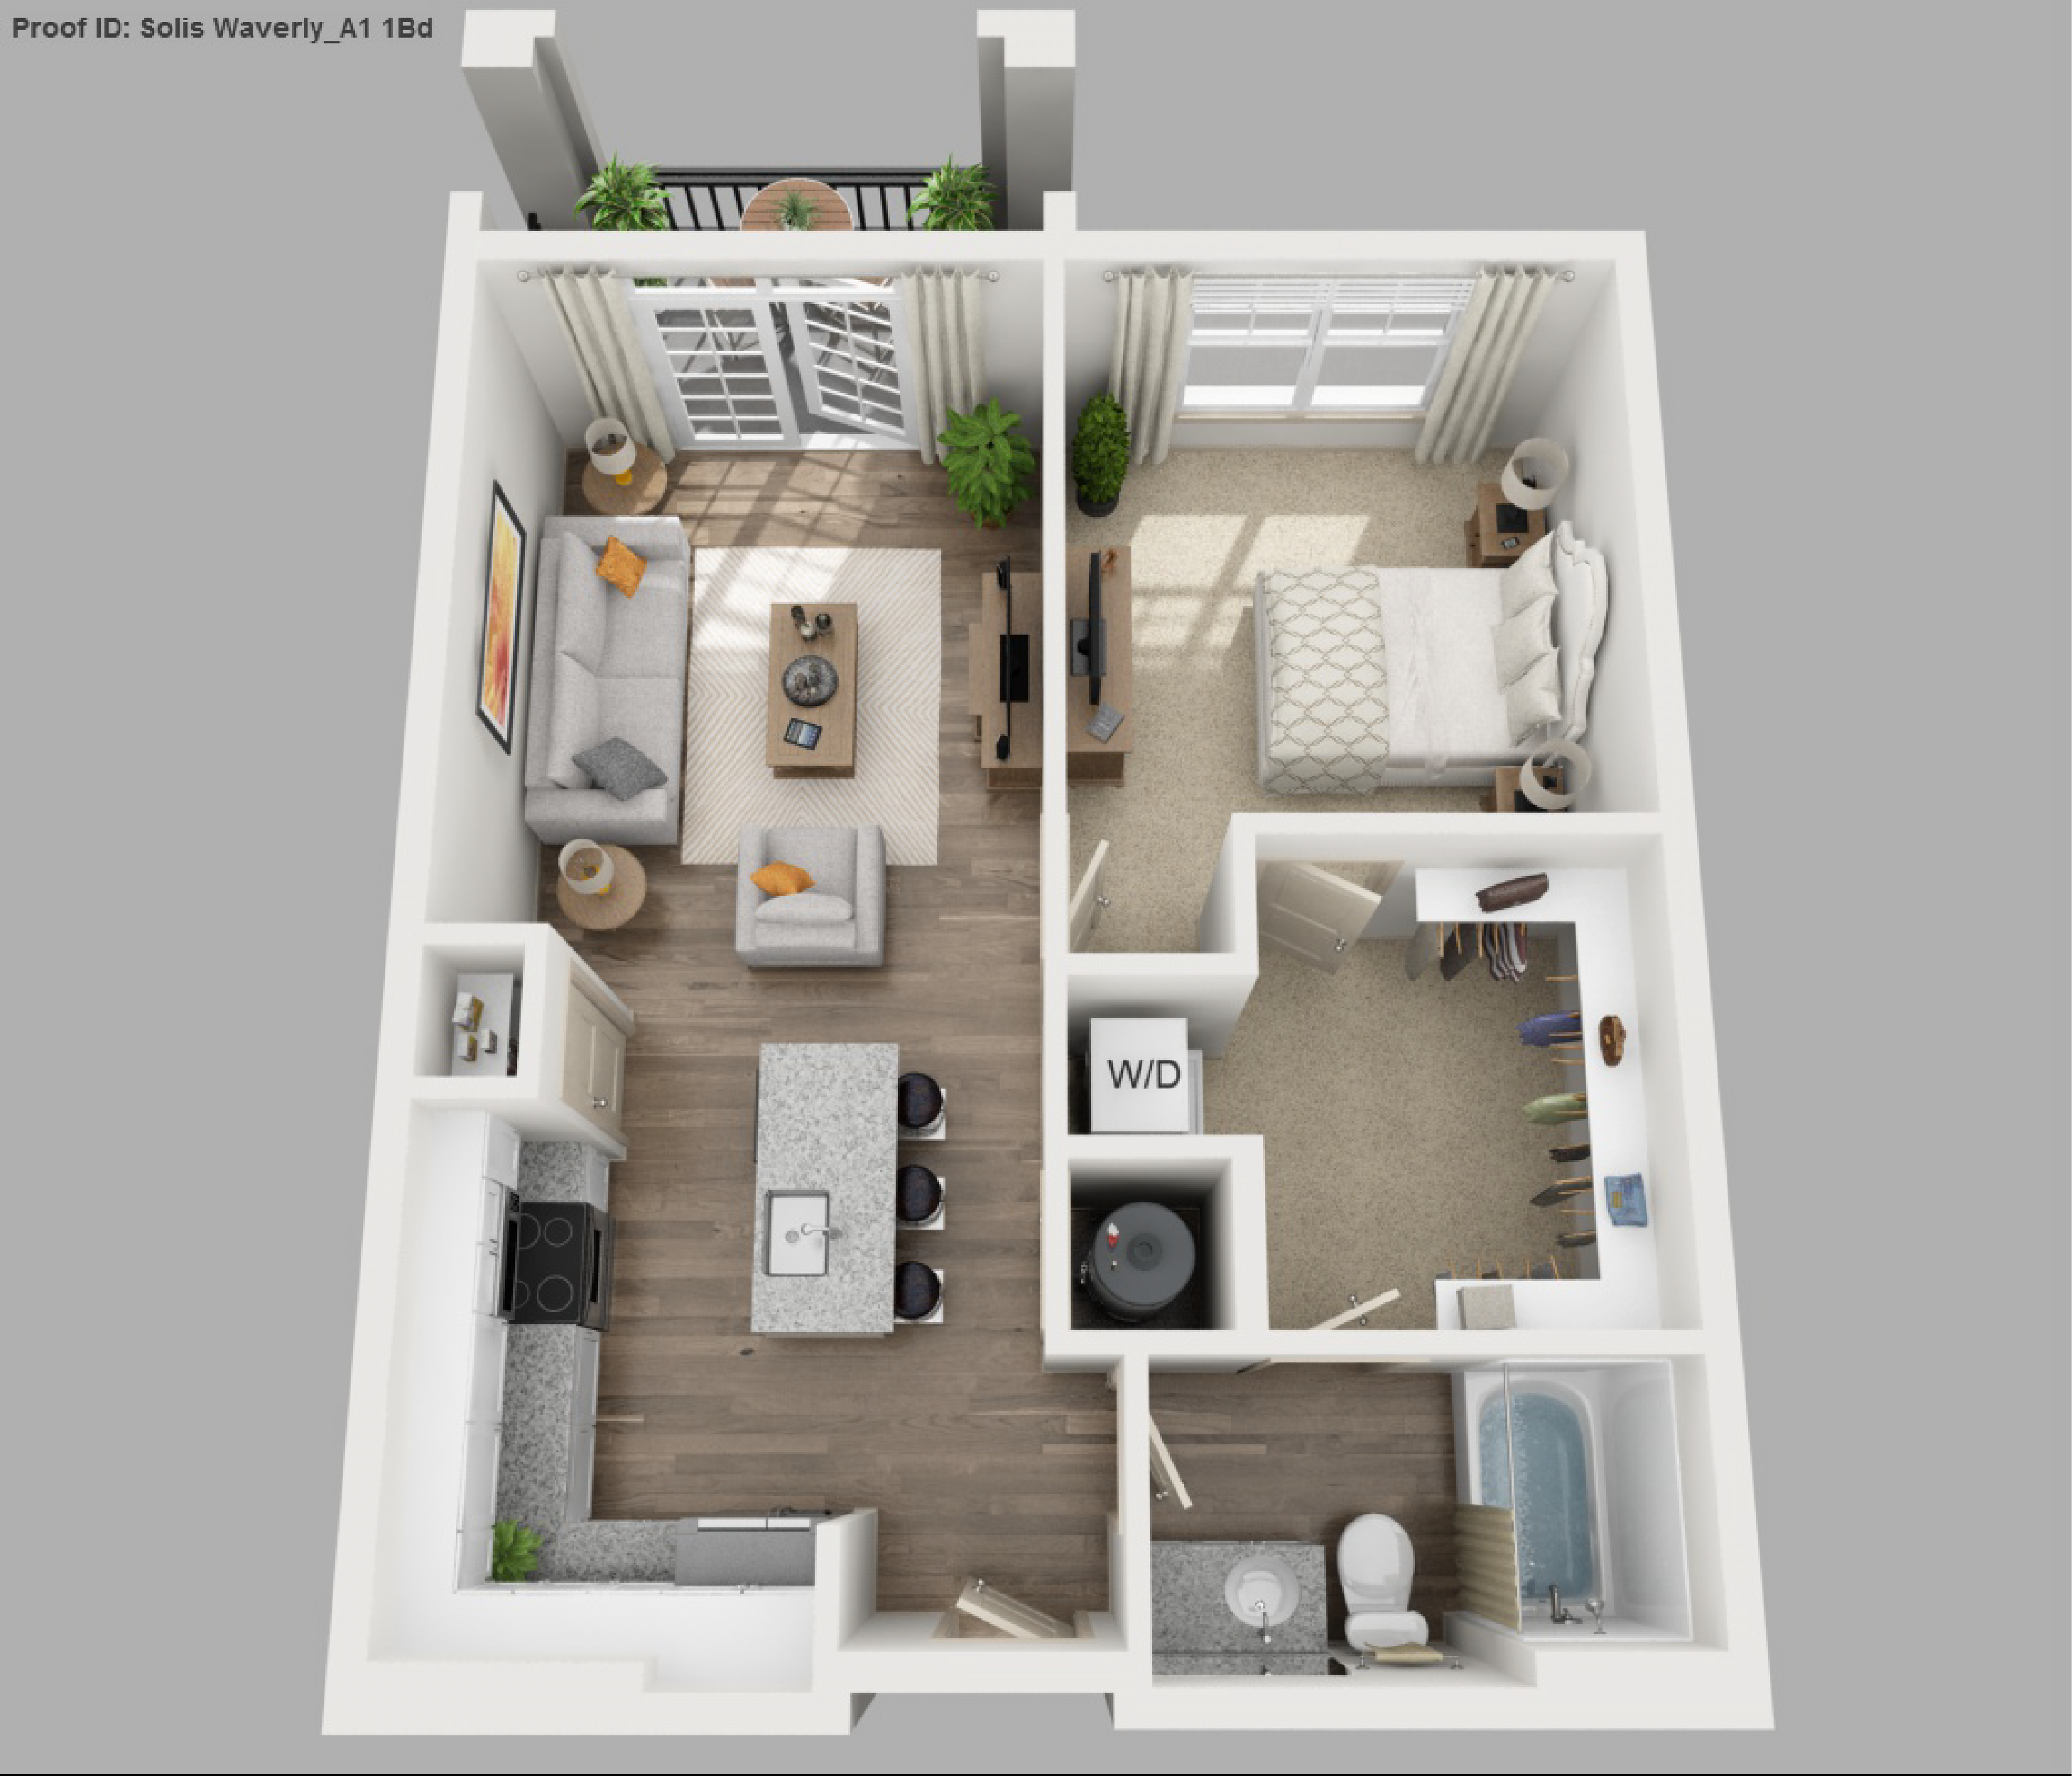 Solis apartments floorplans waverly for One bedroom apartment designs plans